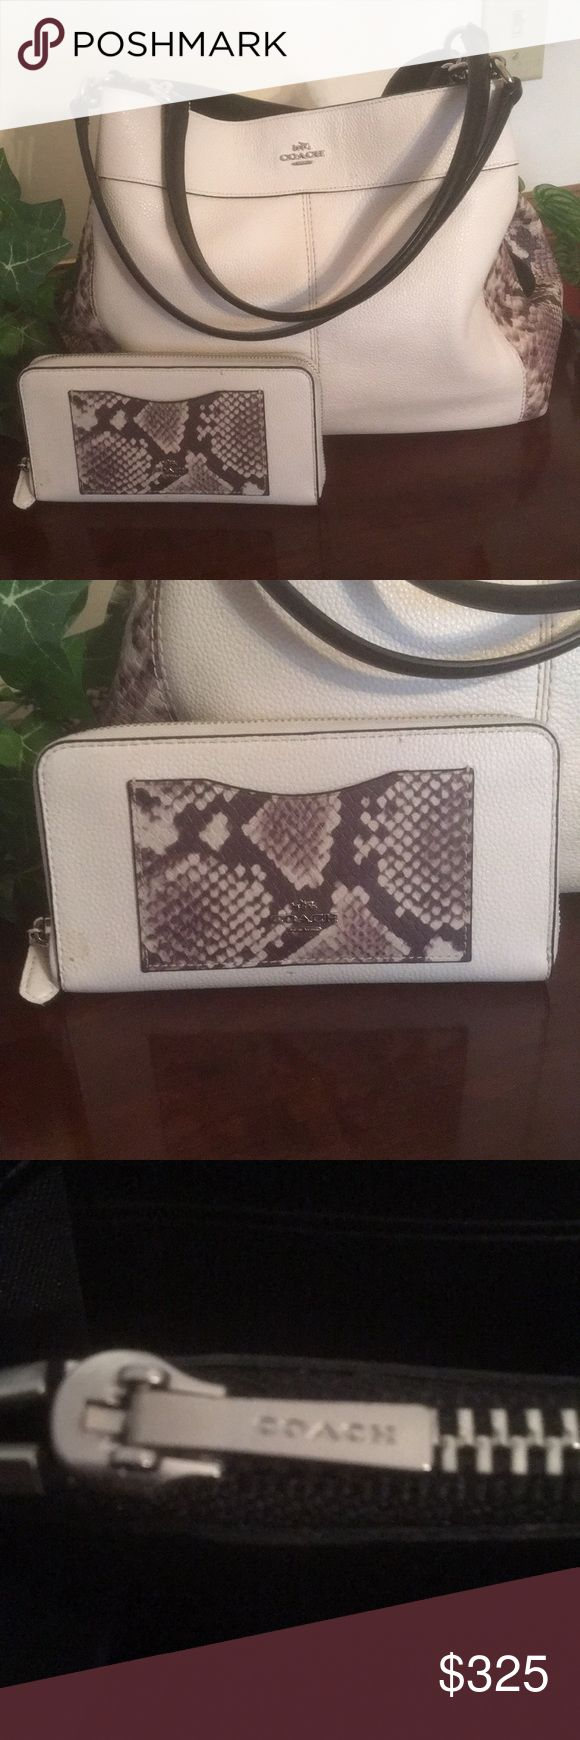 Beautiful Rare Authentic Coach And Wallet! Authentic and rare Coach hobo bag, and matching wallet in like new condition!  Colors are snakeskin, cream and black! Coach Bags Hobos